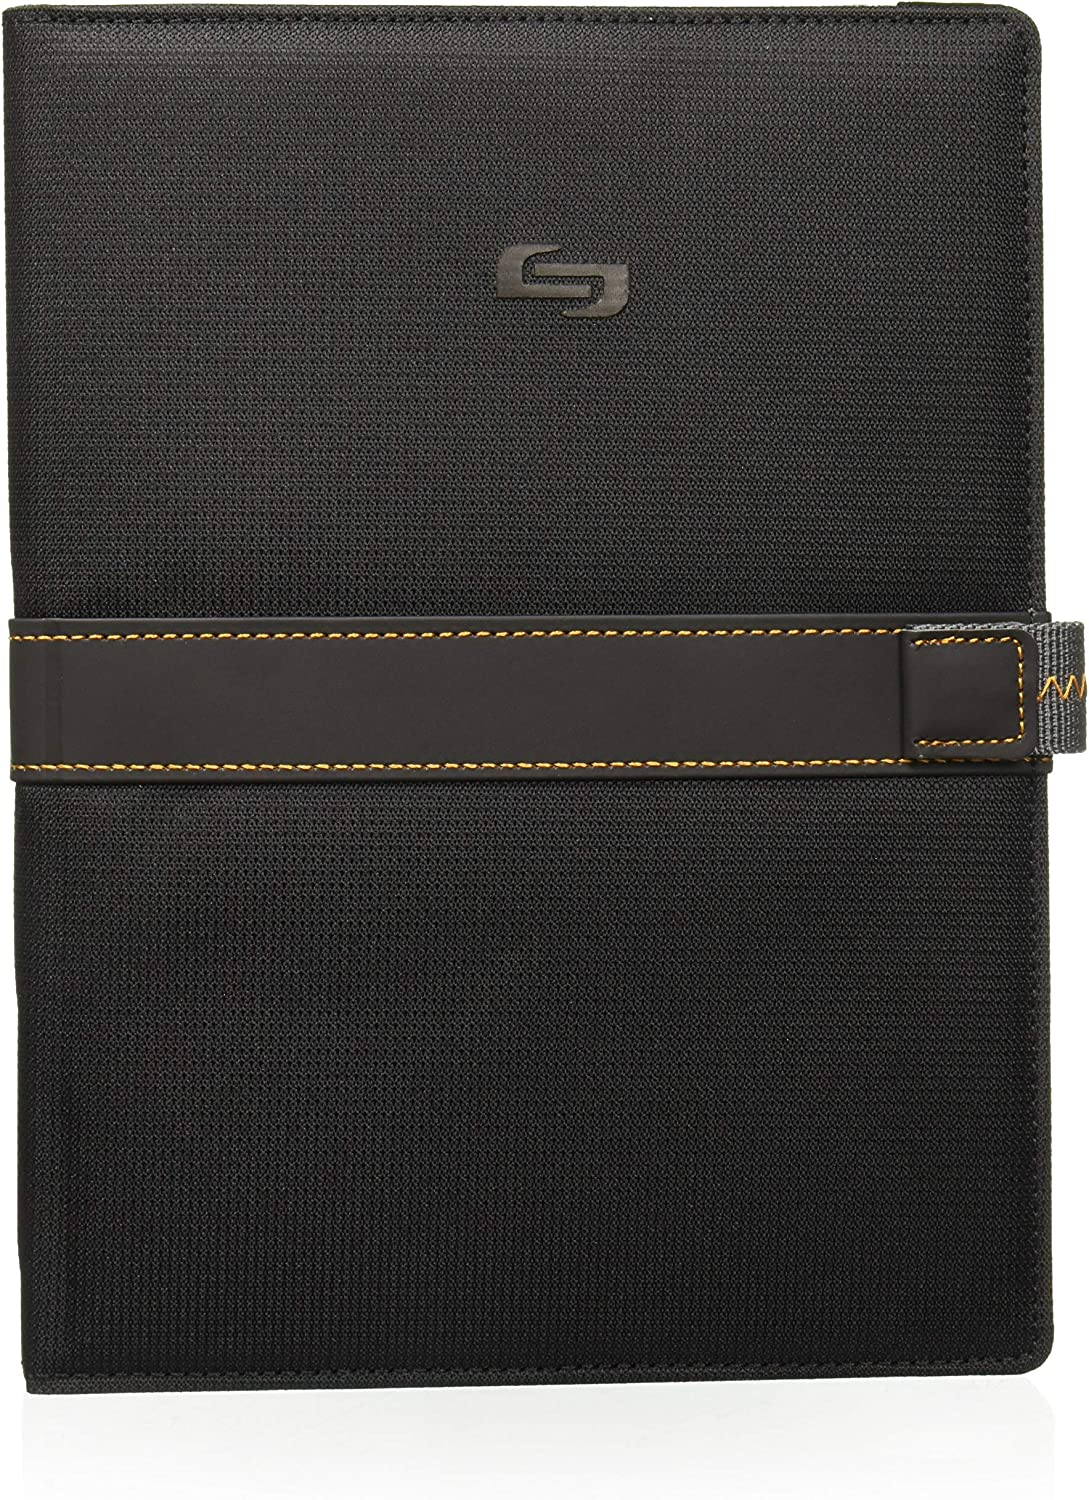 "Solo Metro Universal Tablet Case, fits tablets 8.5"" up to 11"", Black, UBN221-4"